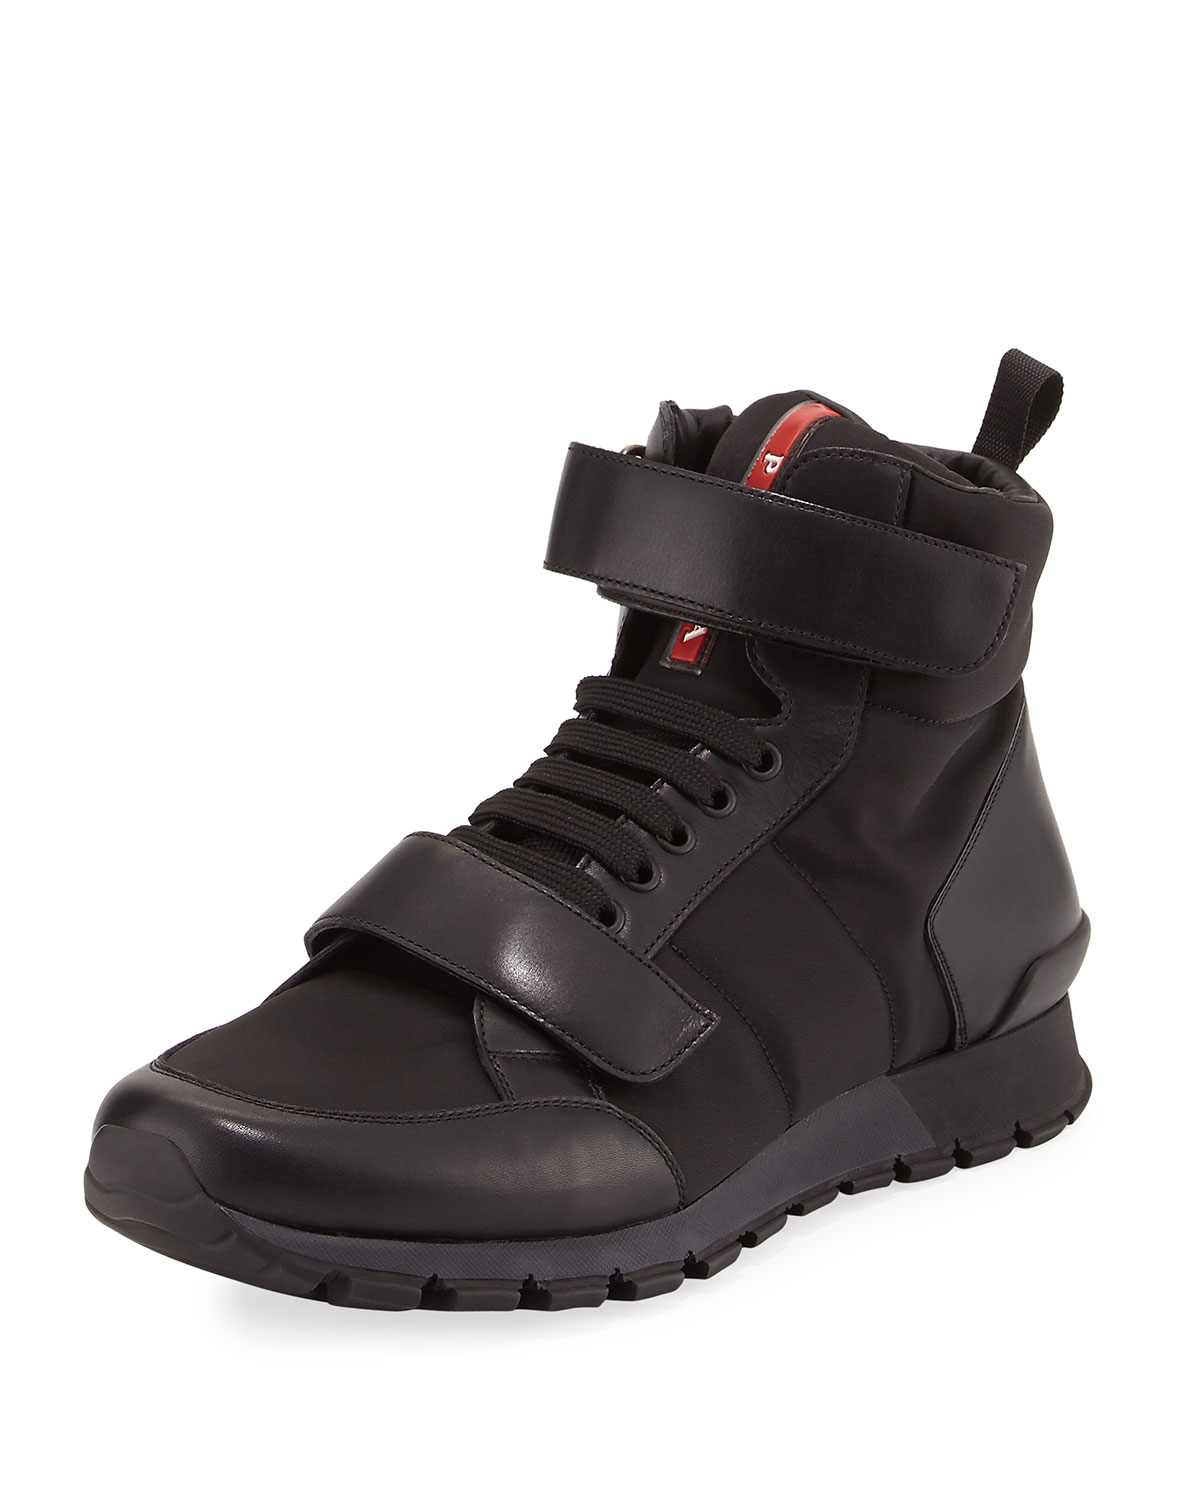 Prada Nylon & Hiking Leather Hiking & Boot, Black c1f36a